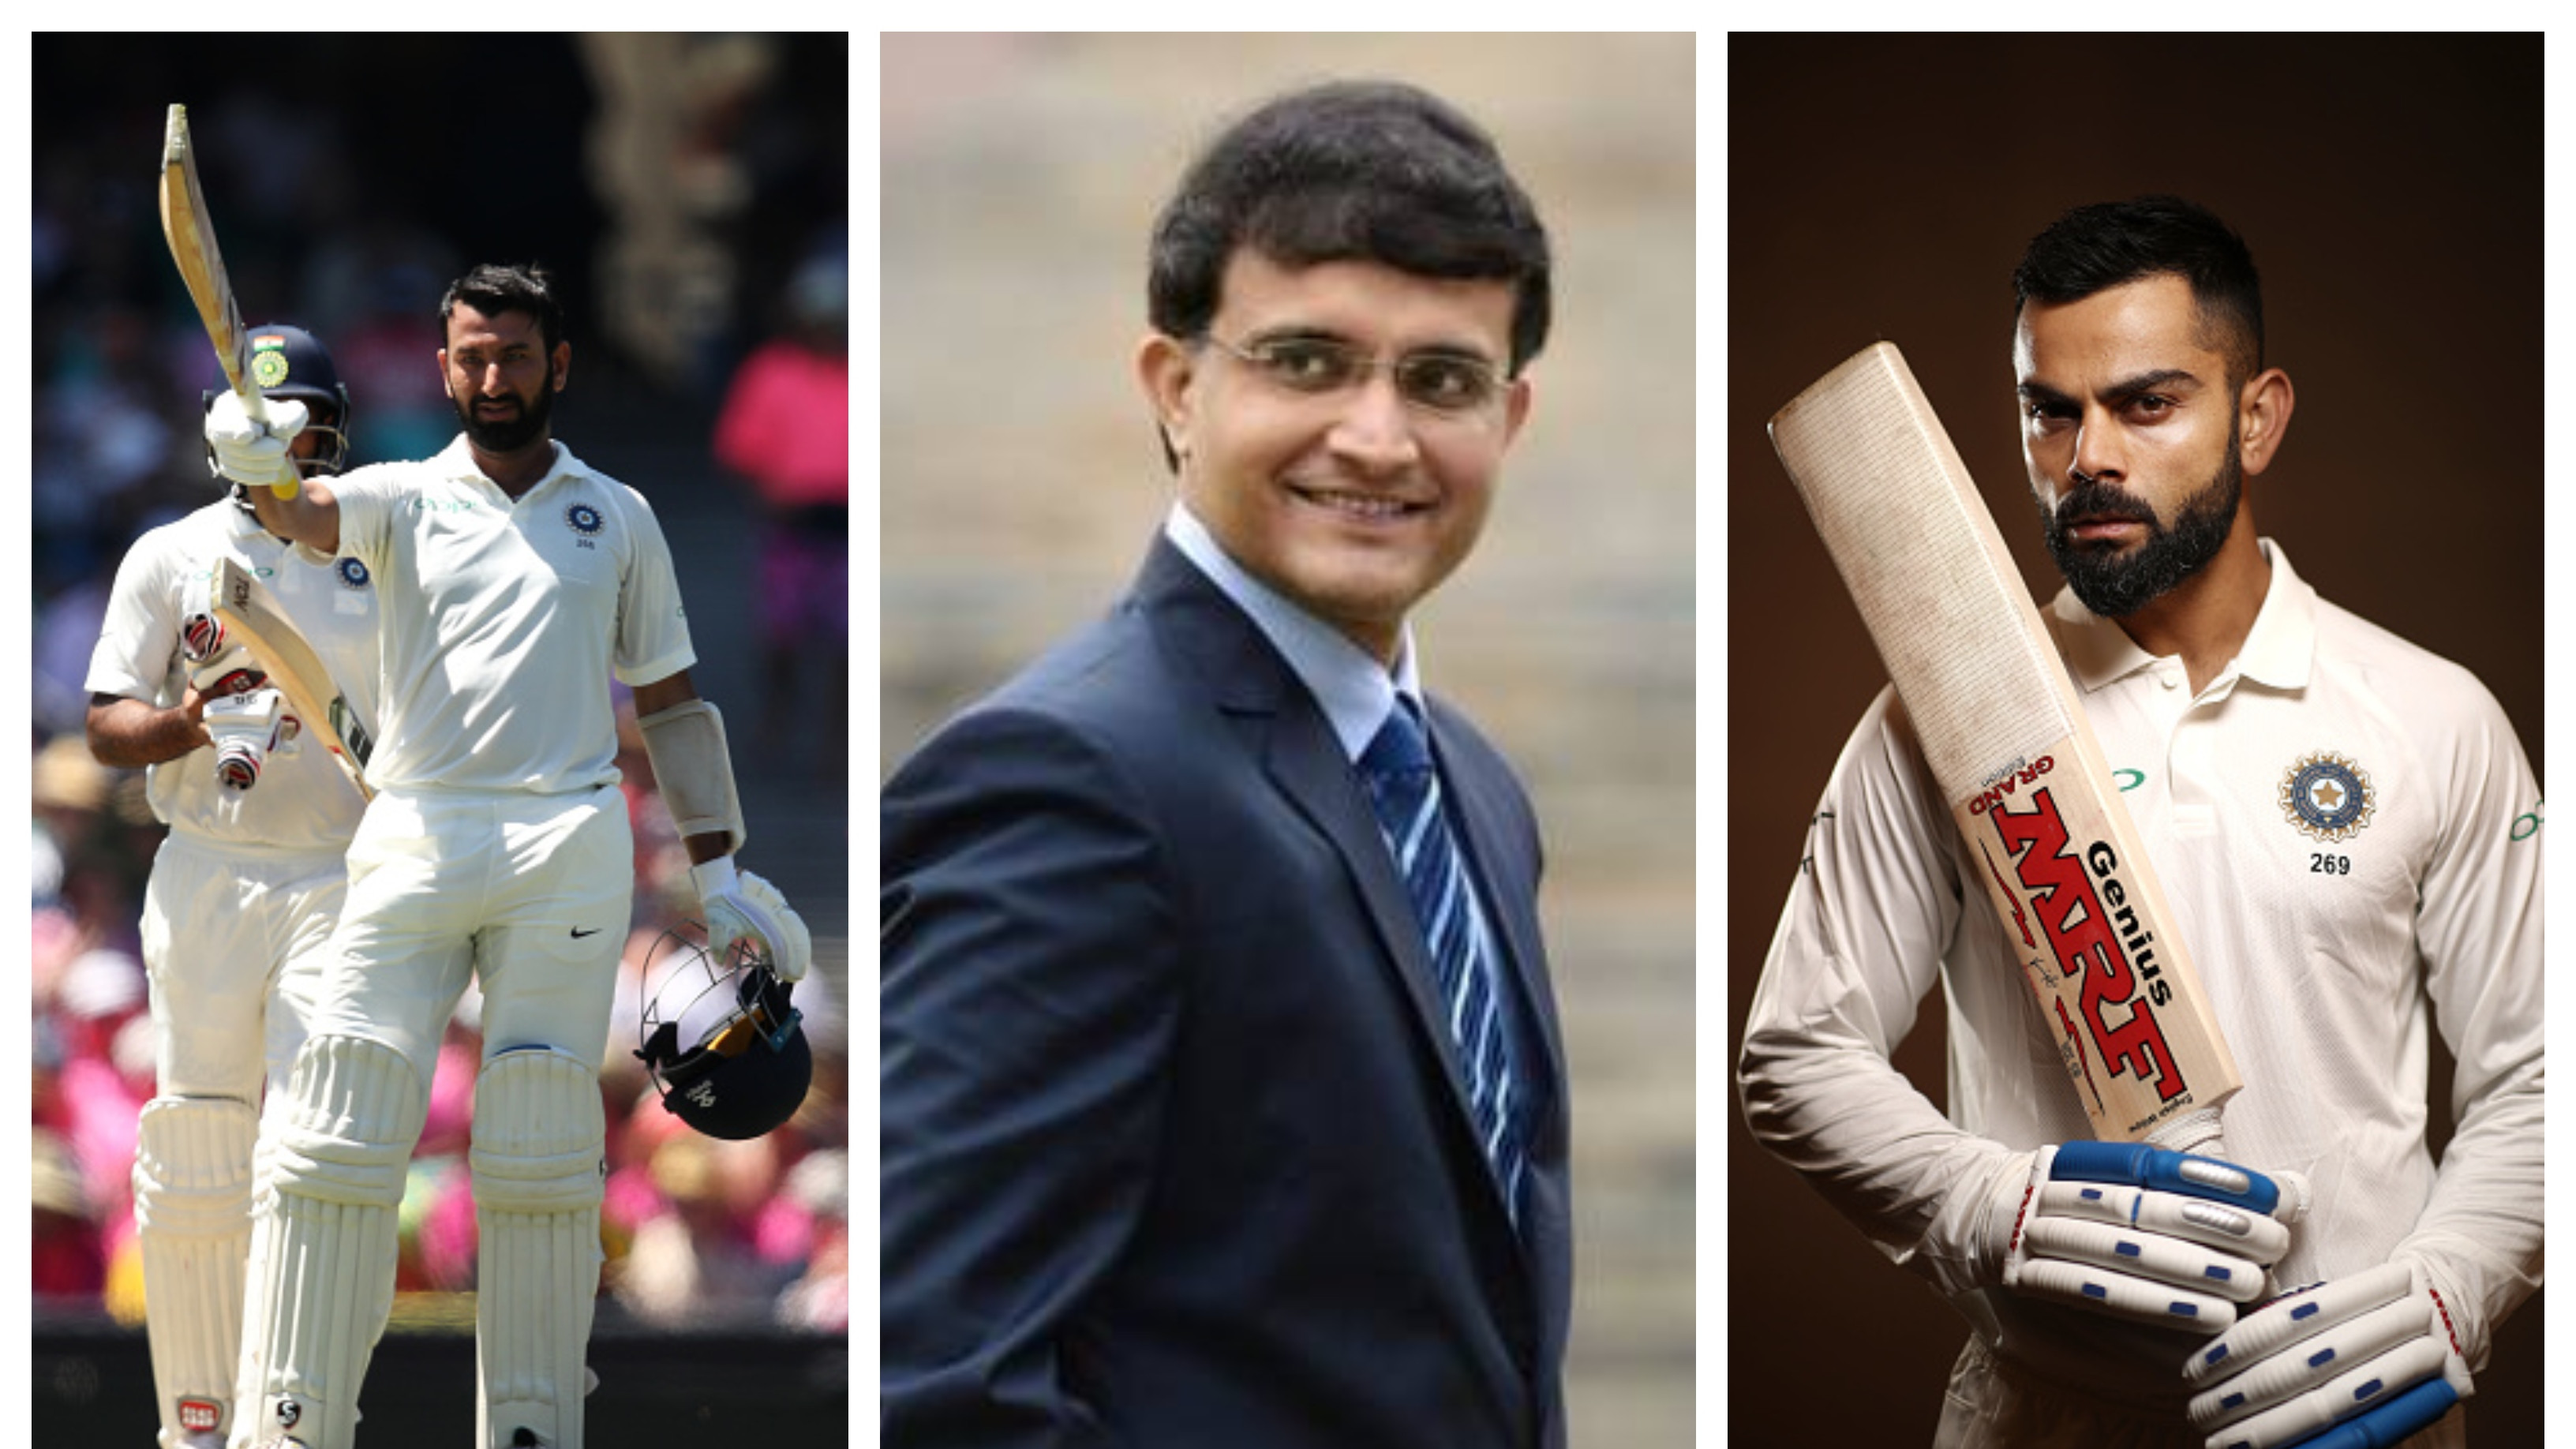 AUS v IND 2018-19: Pujara as important as Virat in Test Cricket for India, says Sourav Ganguly